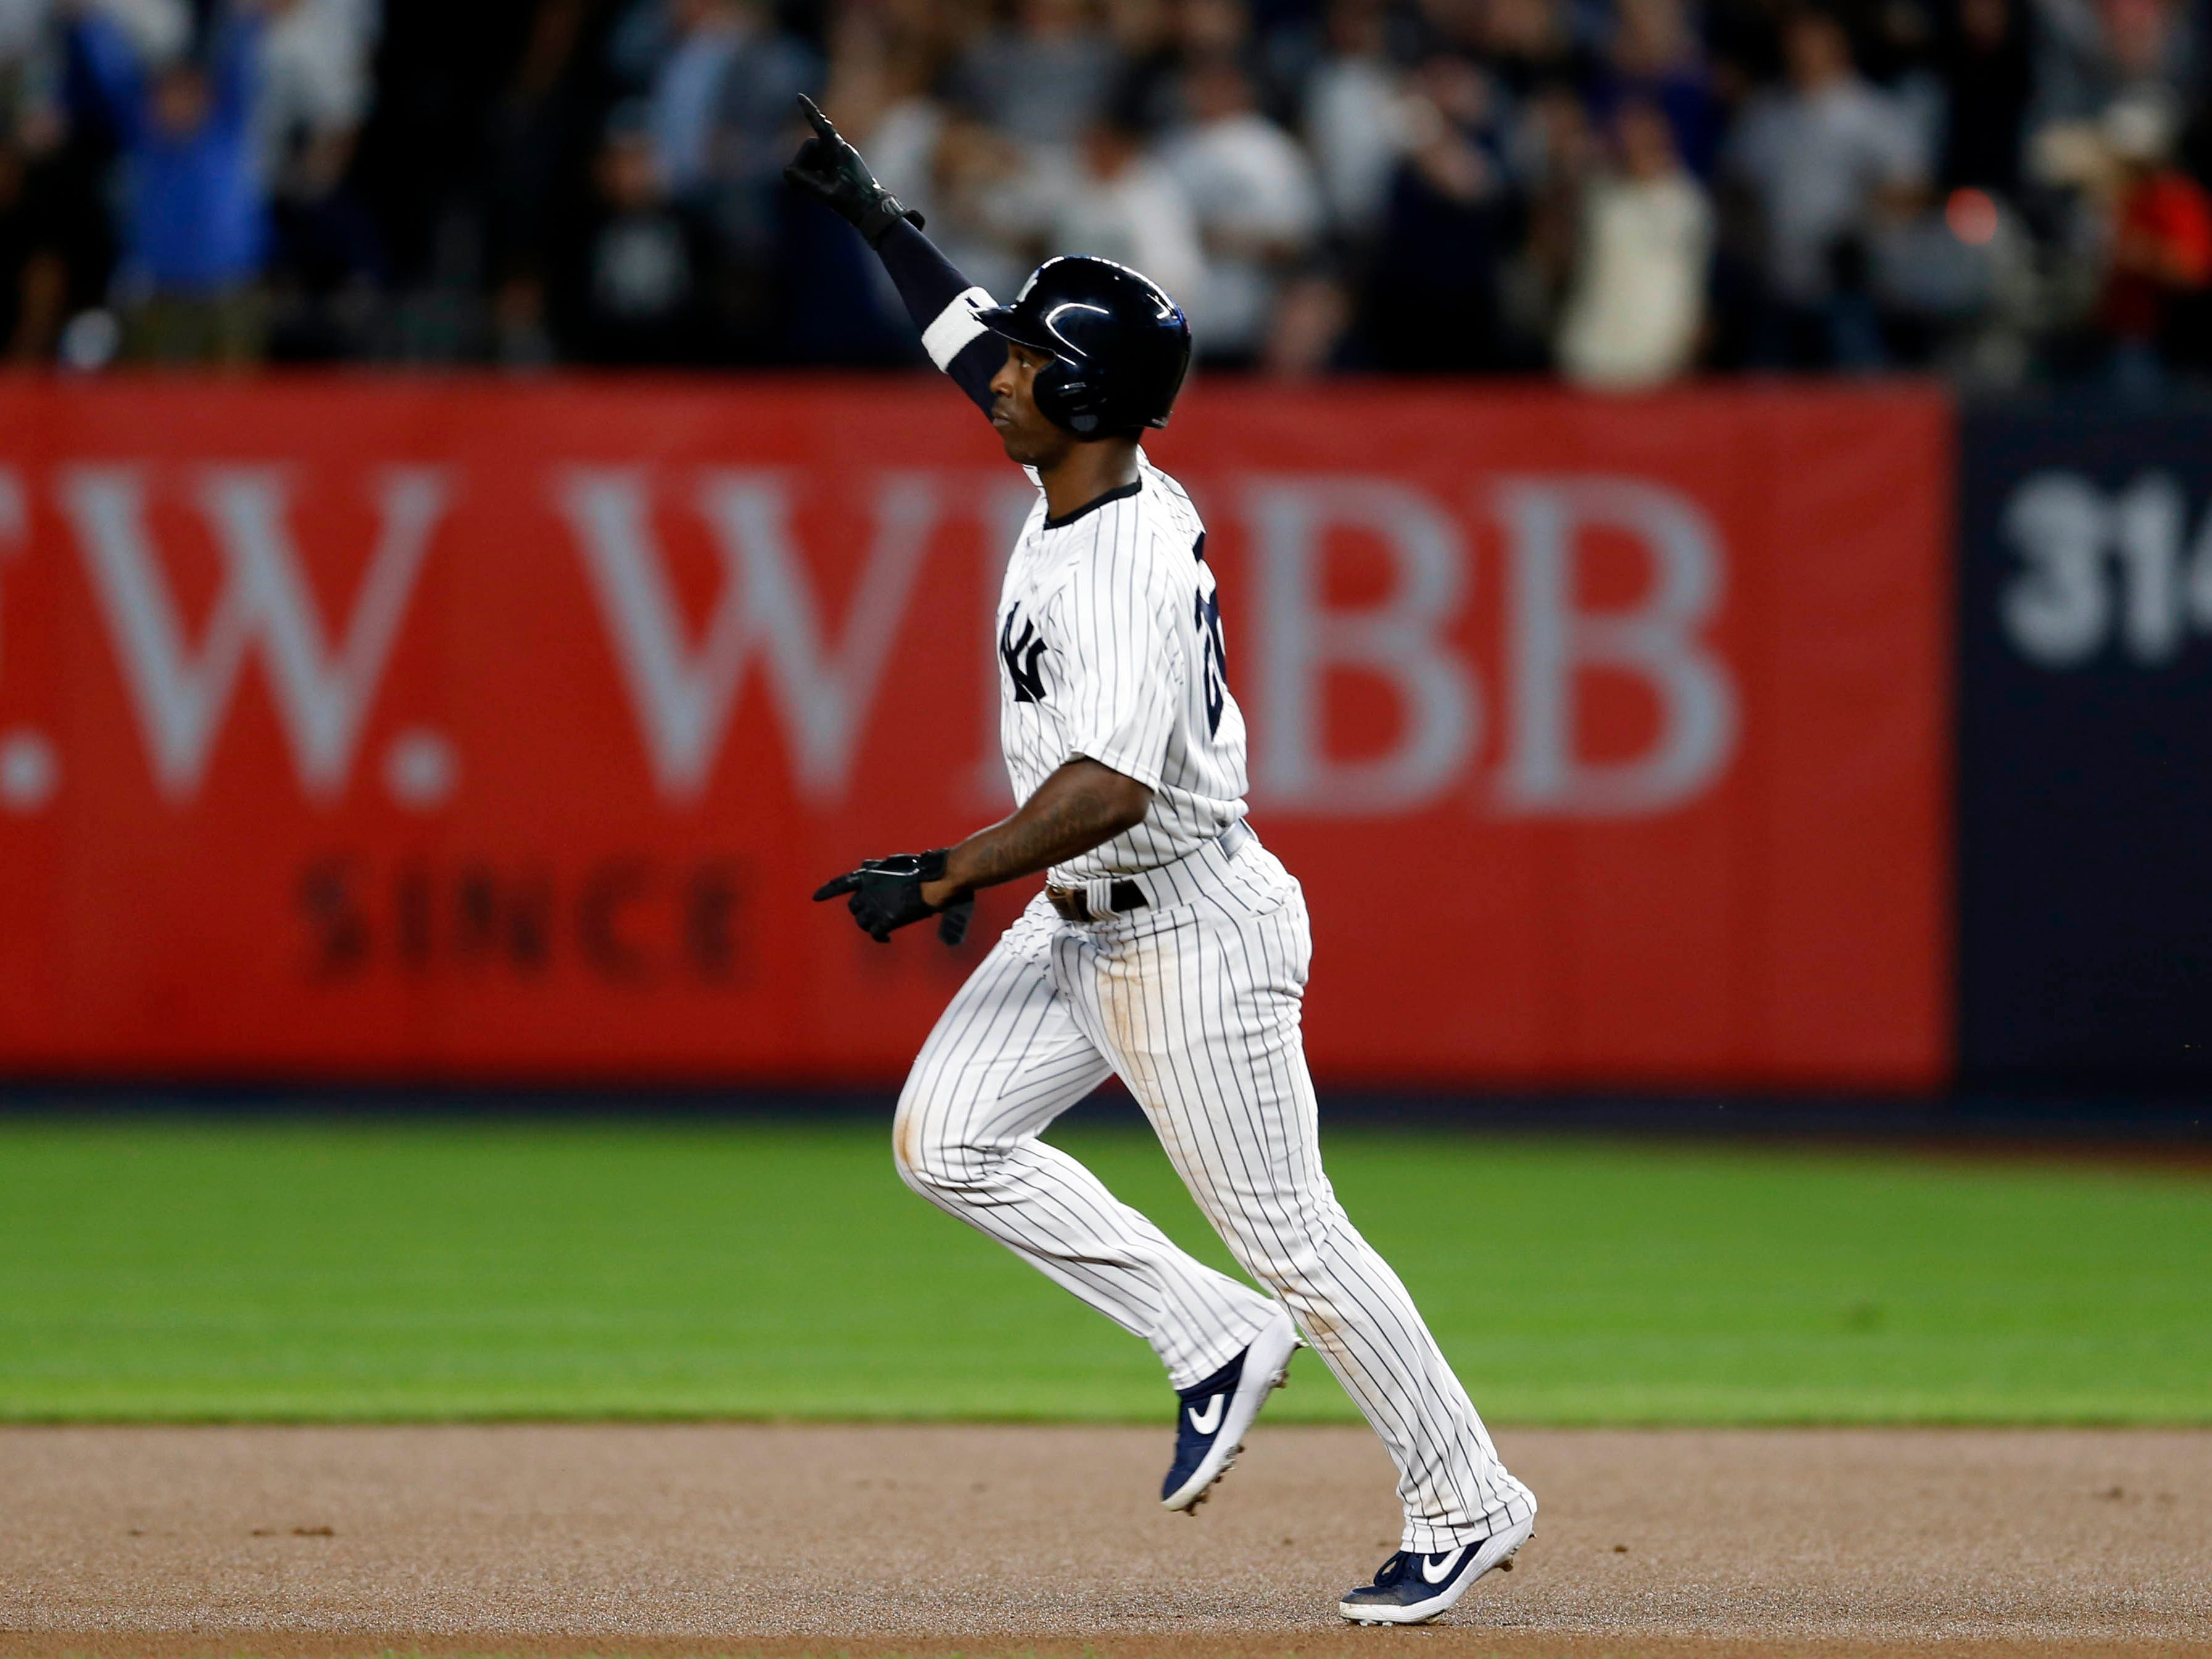 Andrew McCutchen (32, OF, Yankees) - signed with Phillies, 4 years/$50 million